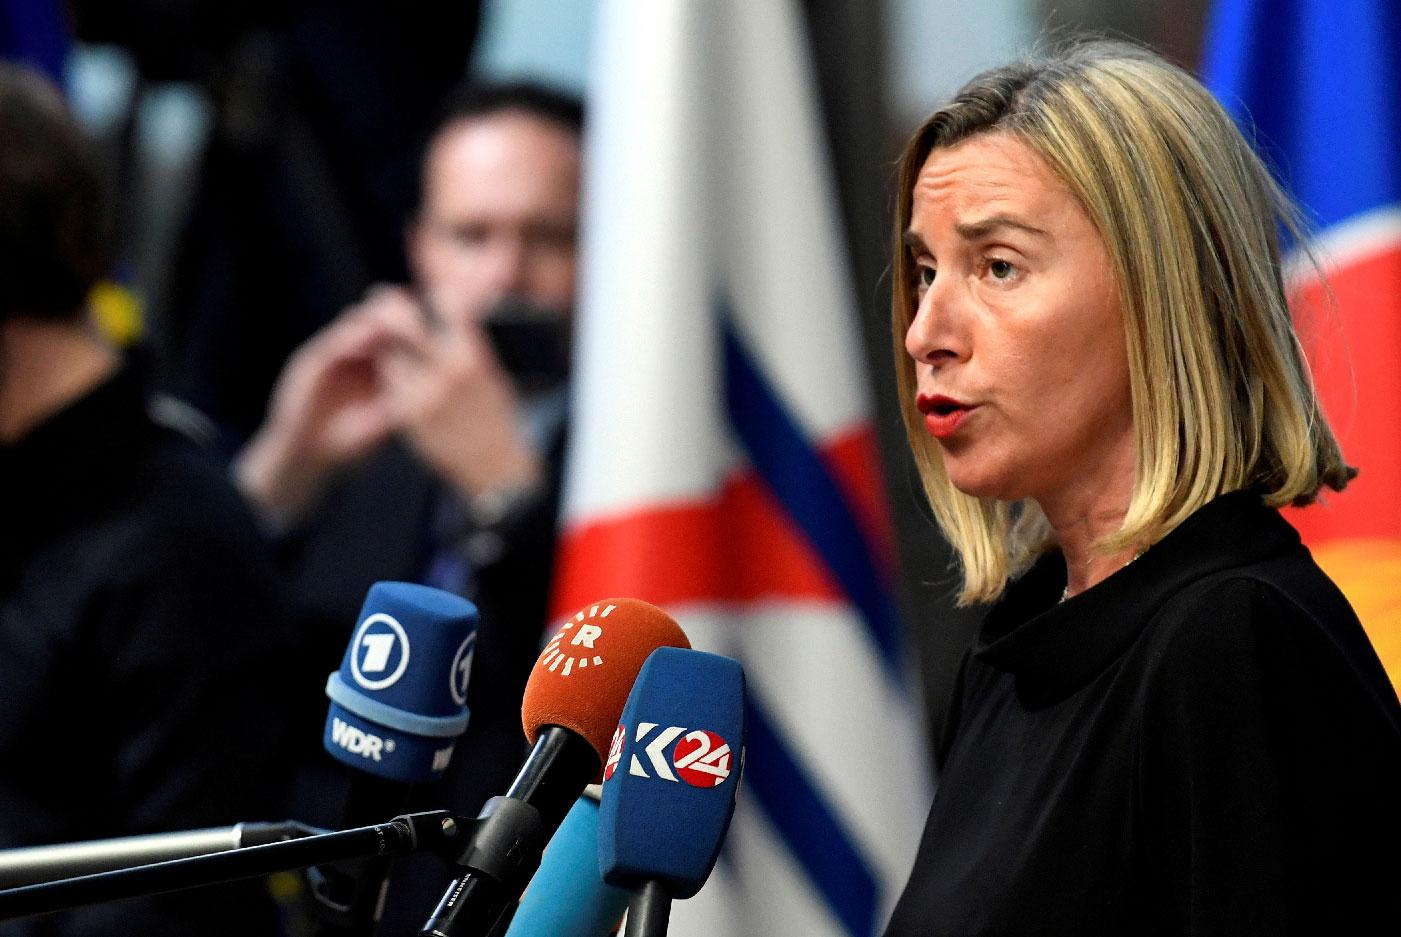 EU Foreign Policy chief Federica Mogherini.